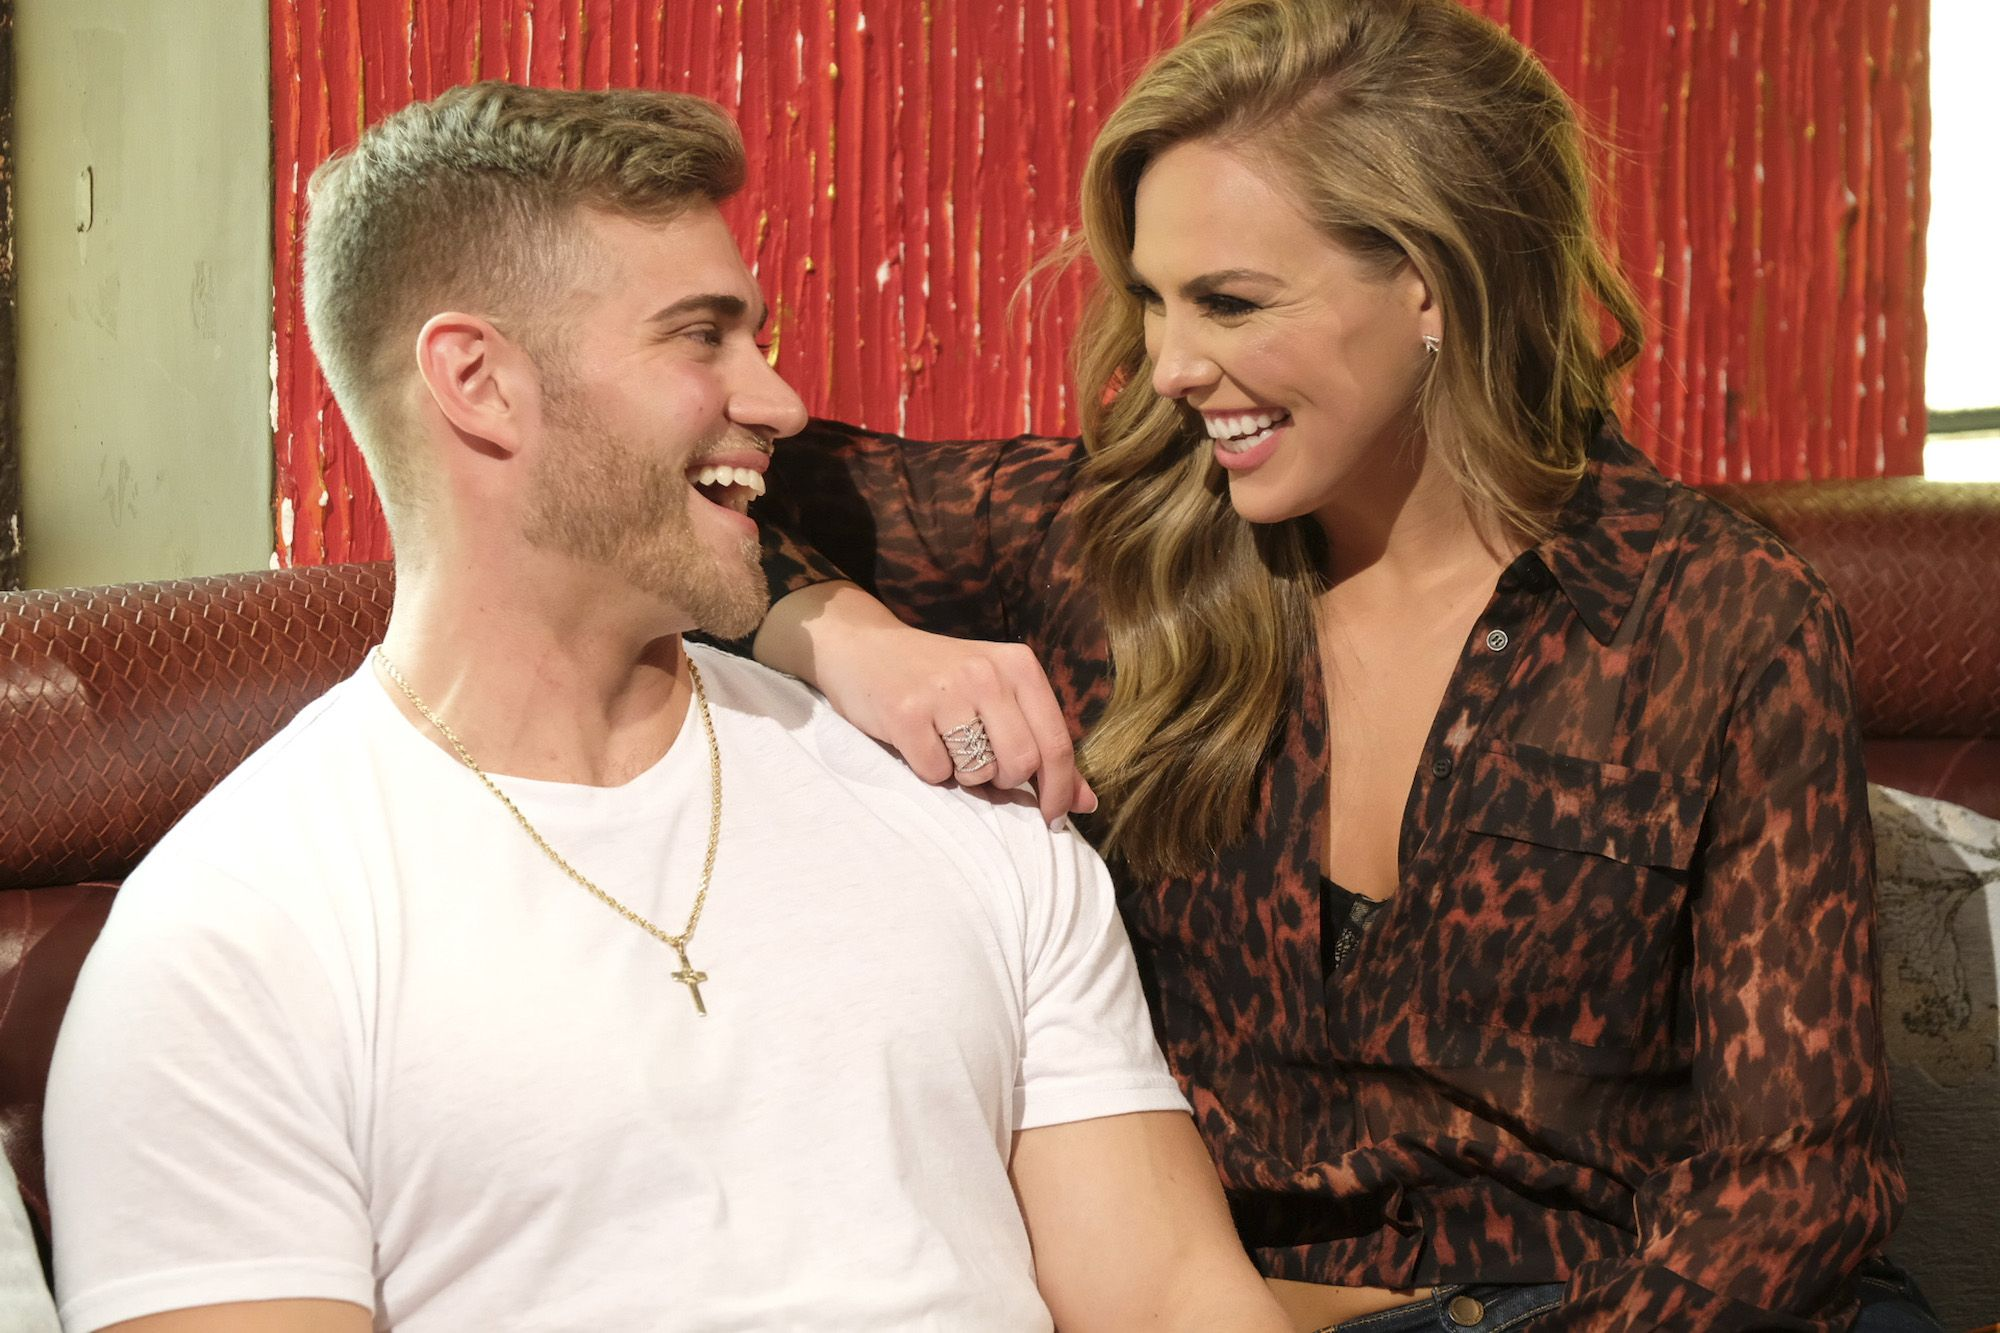 Need Proof That Hannah Should RUN From Luke P.? Check Out These 6 Warning Signs